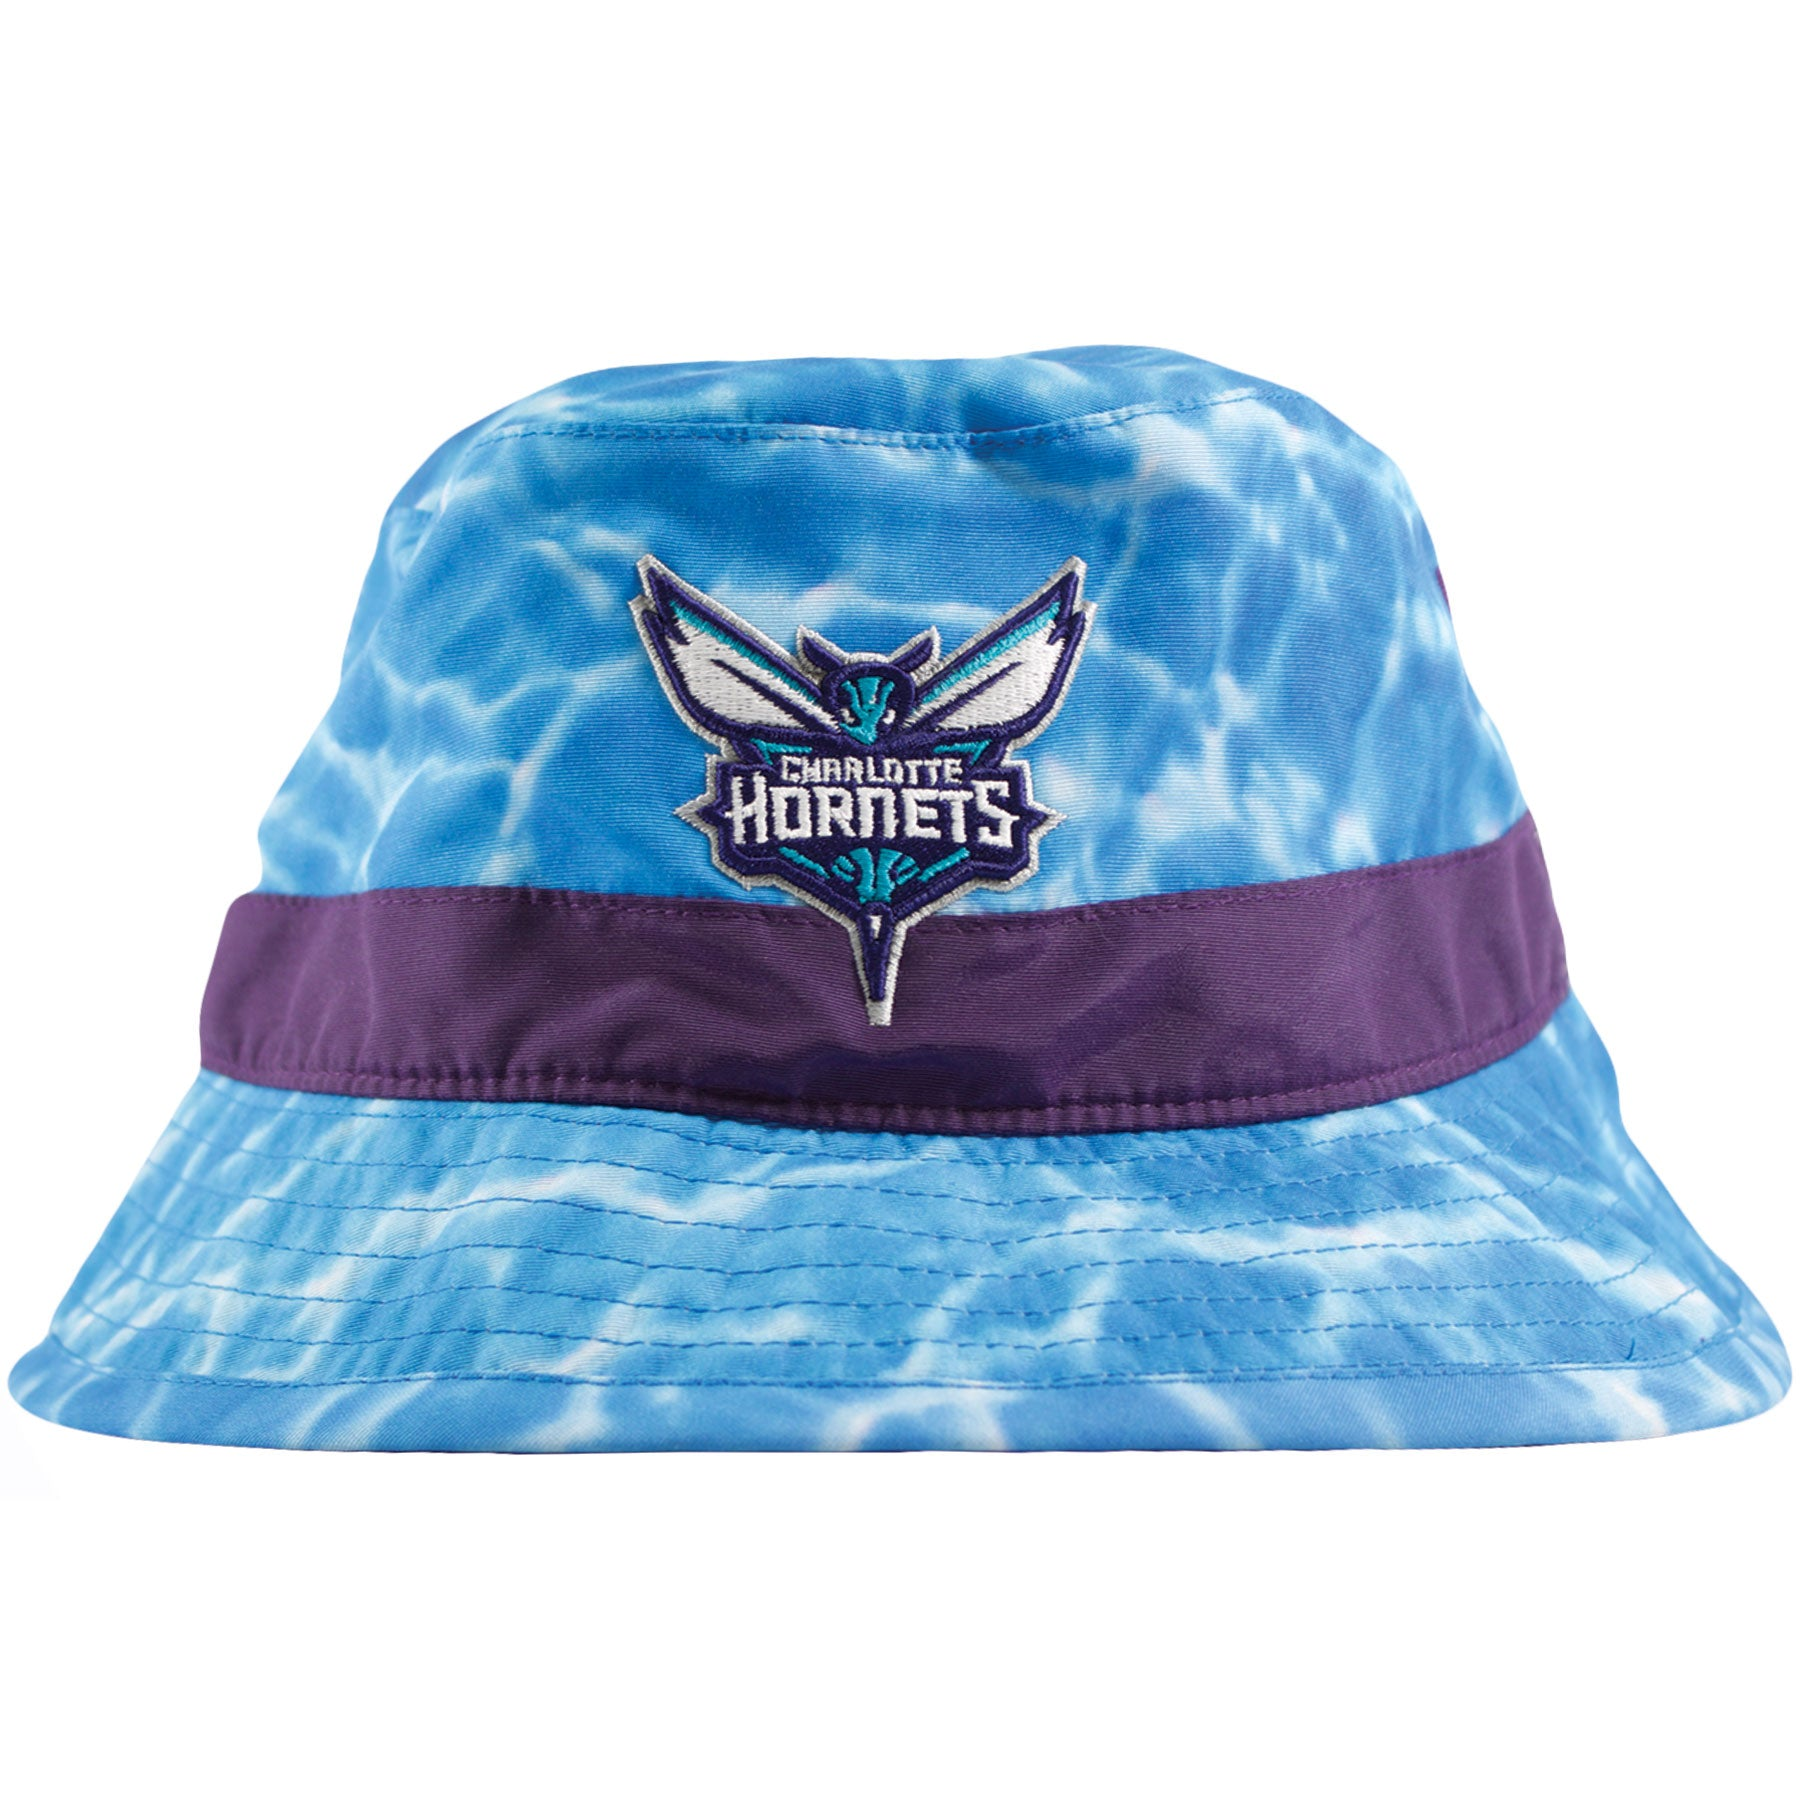 newest d01ea 5dfad ... Charlotte Hornets Surf Camo Mitchell and Ness Bucket Hat ...